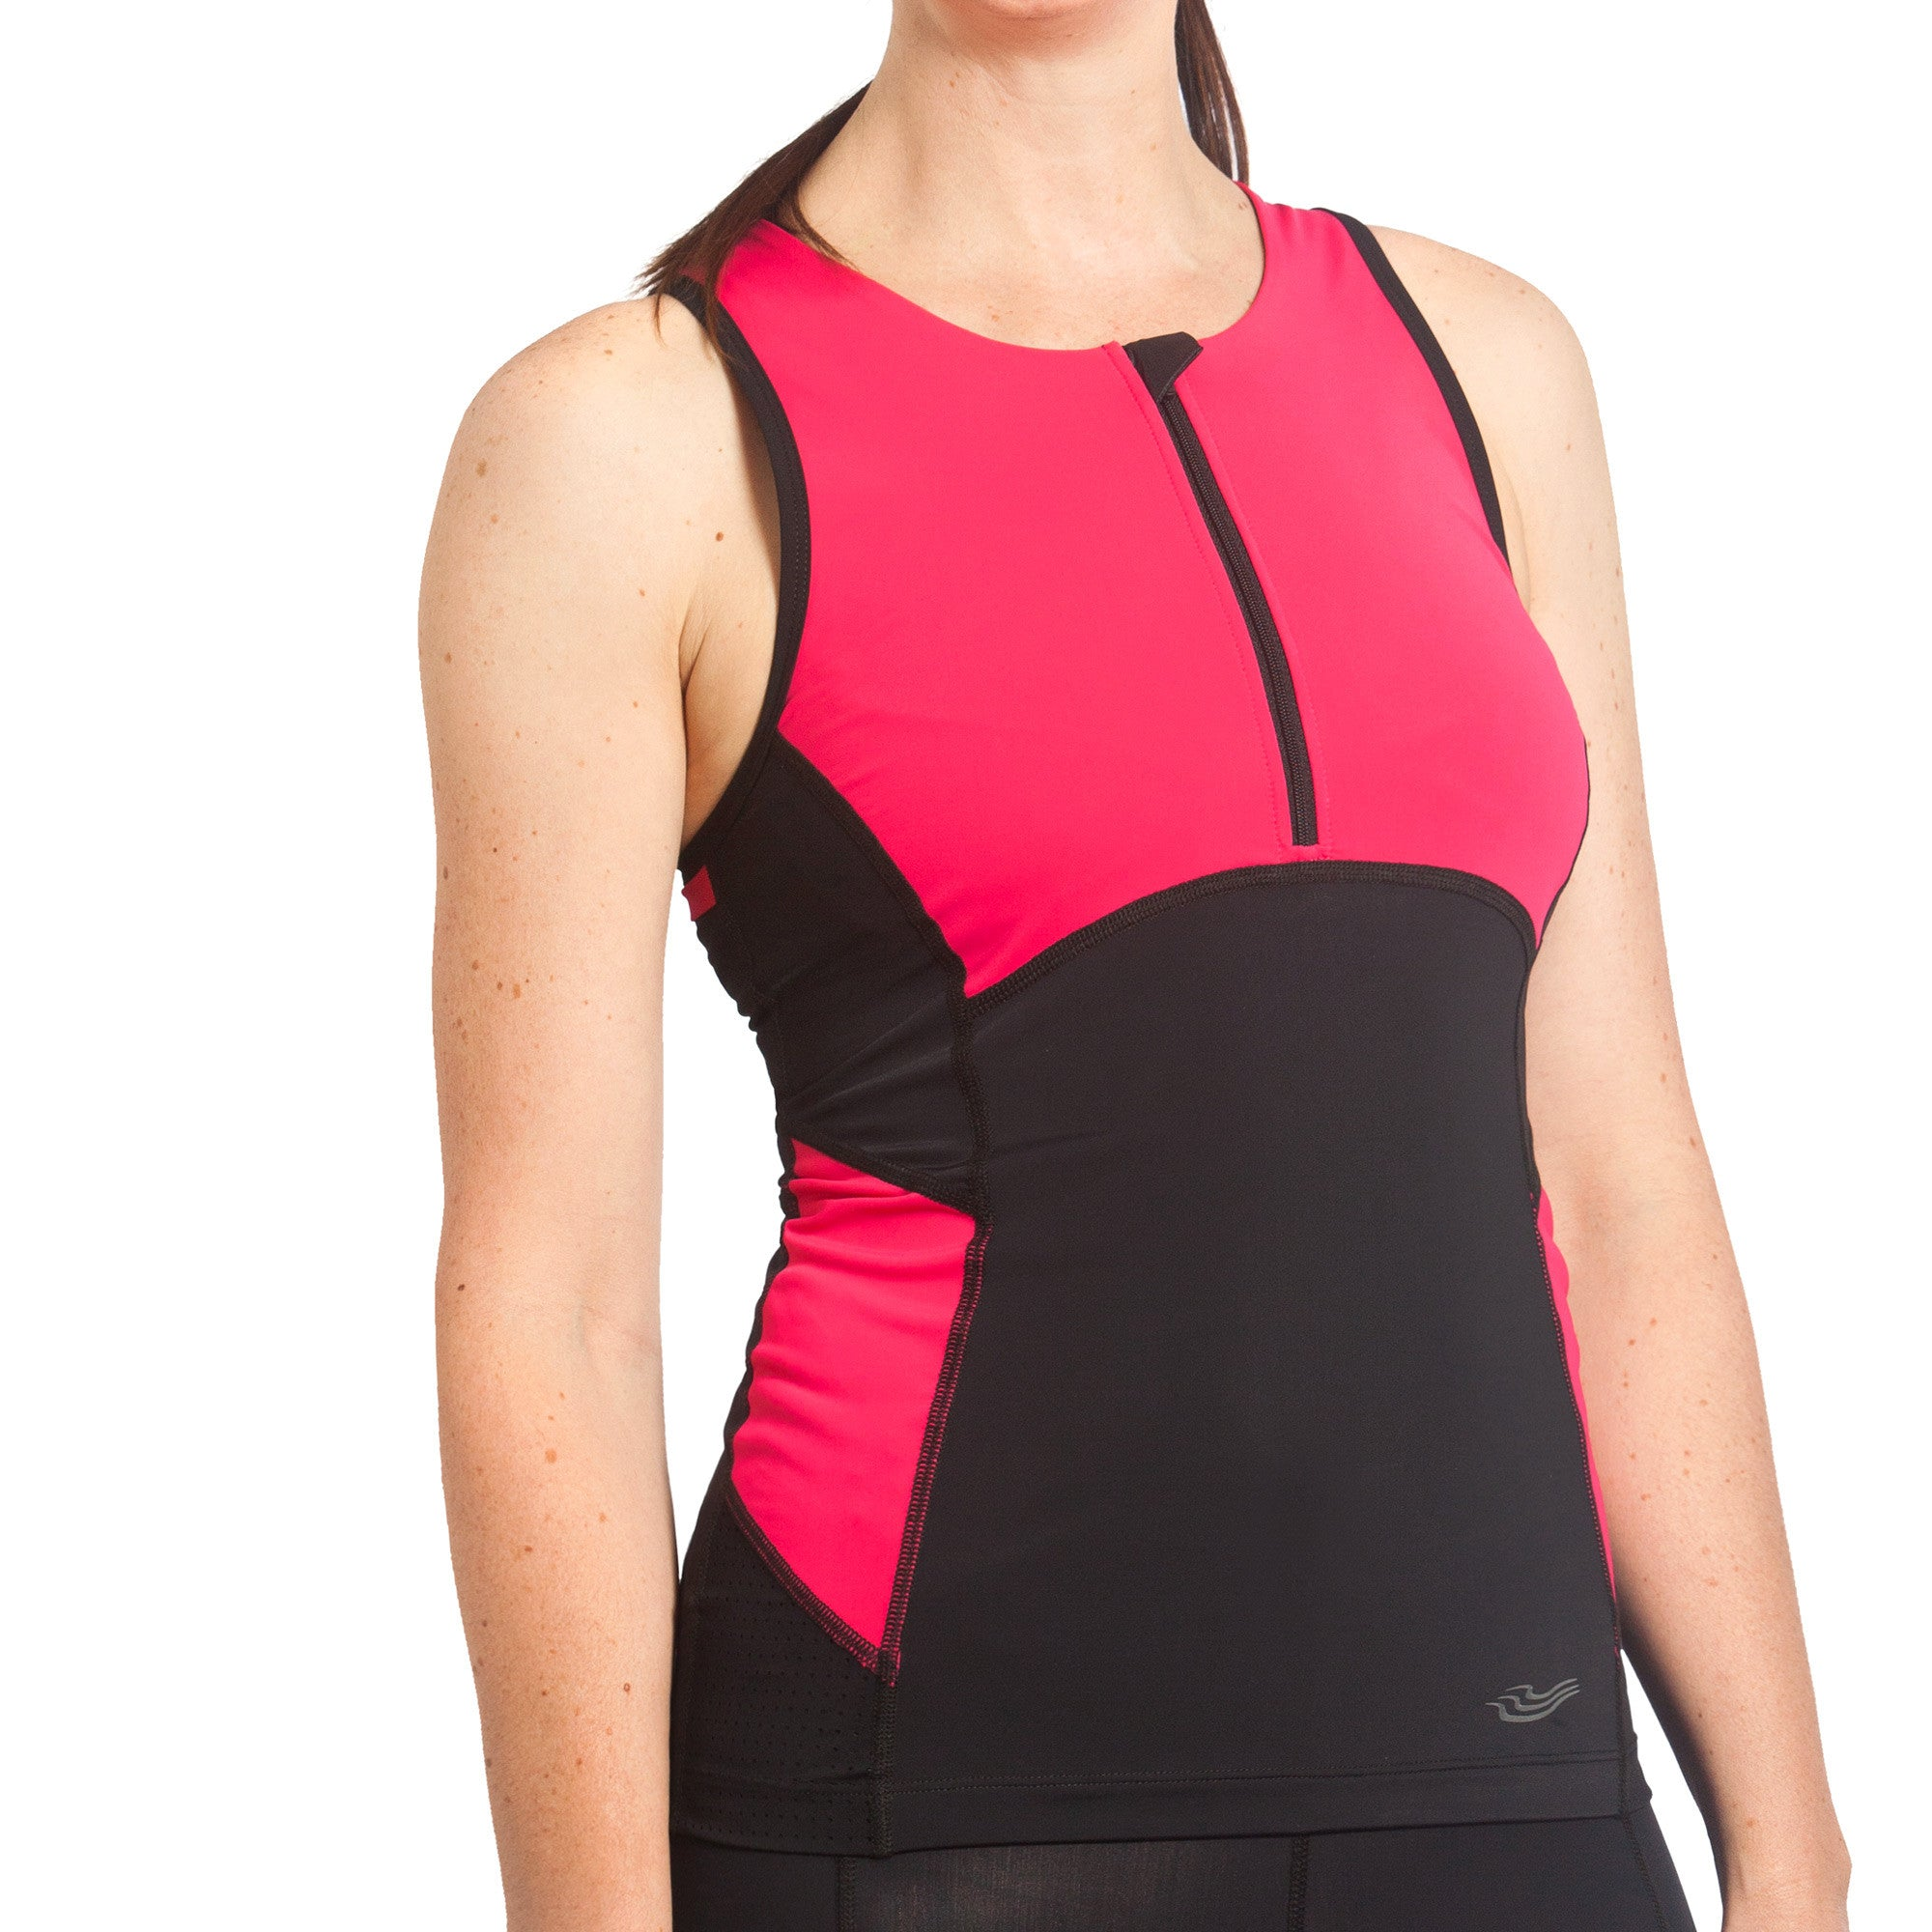 Trigirl Brave technical triathlon top with supportive quick-drying bra in bright pink.